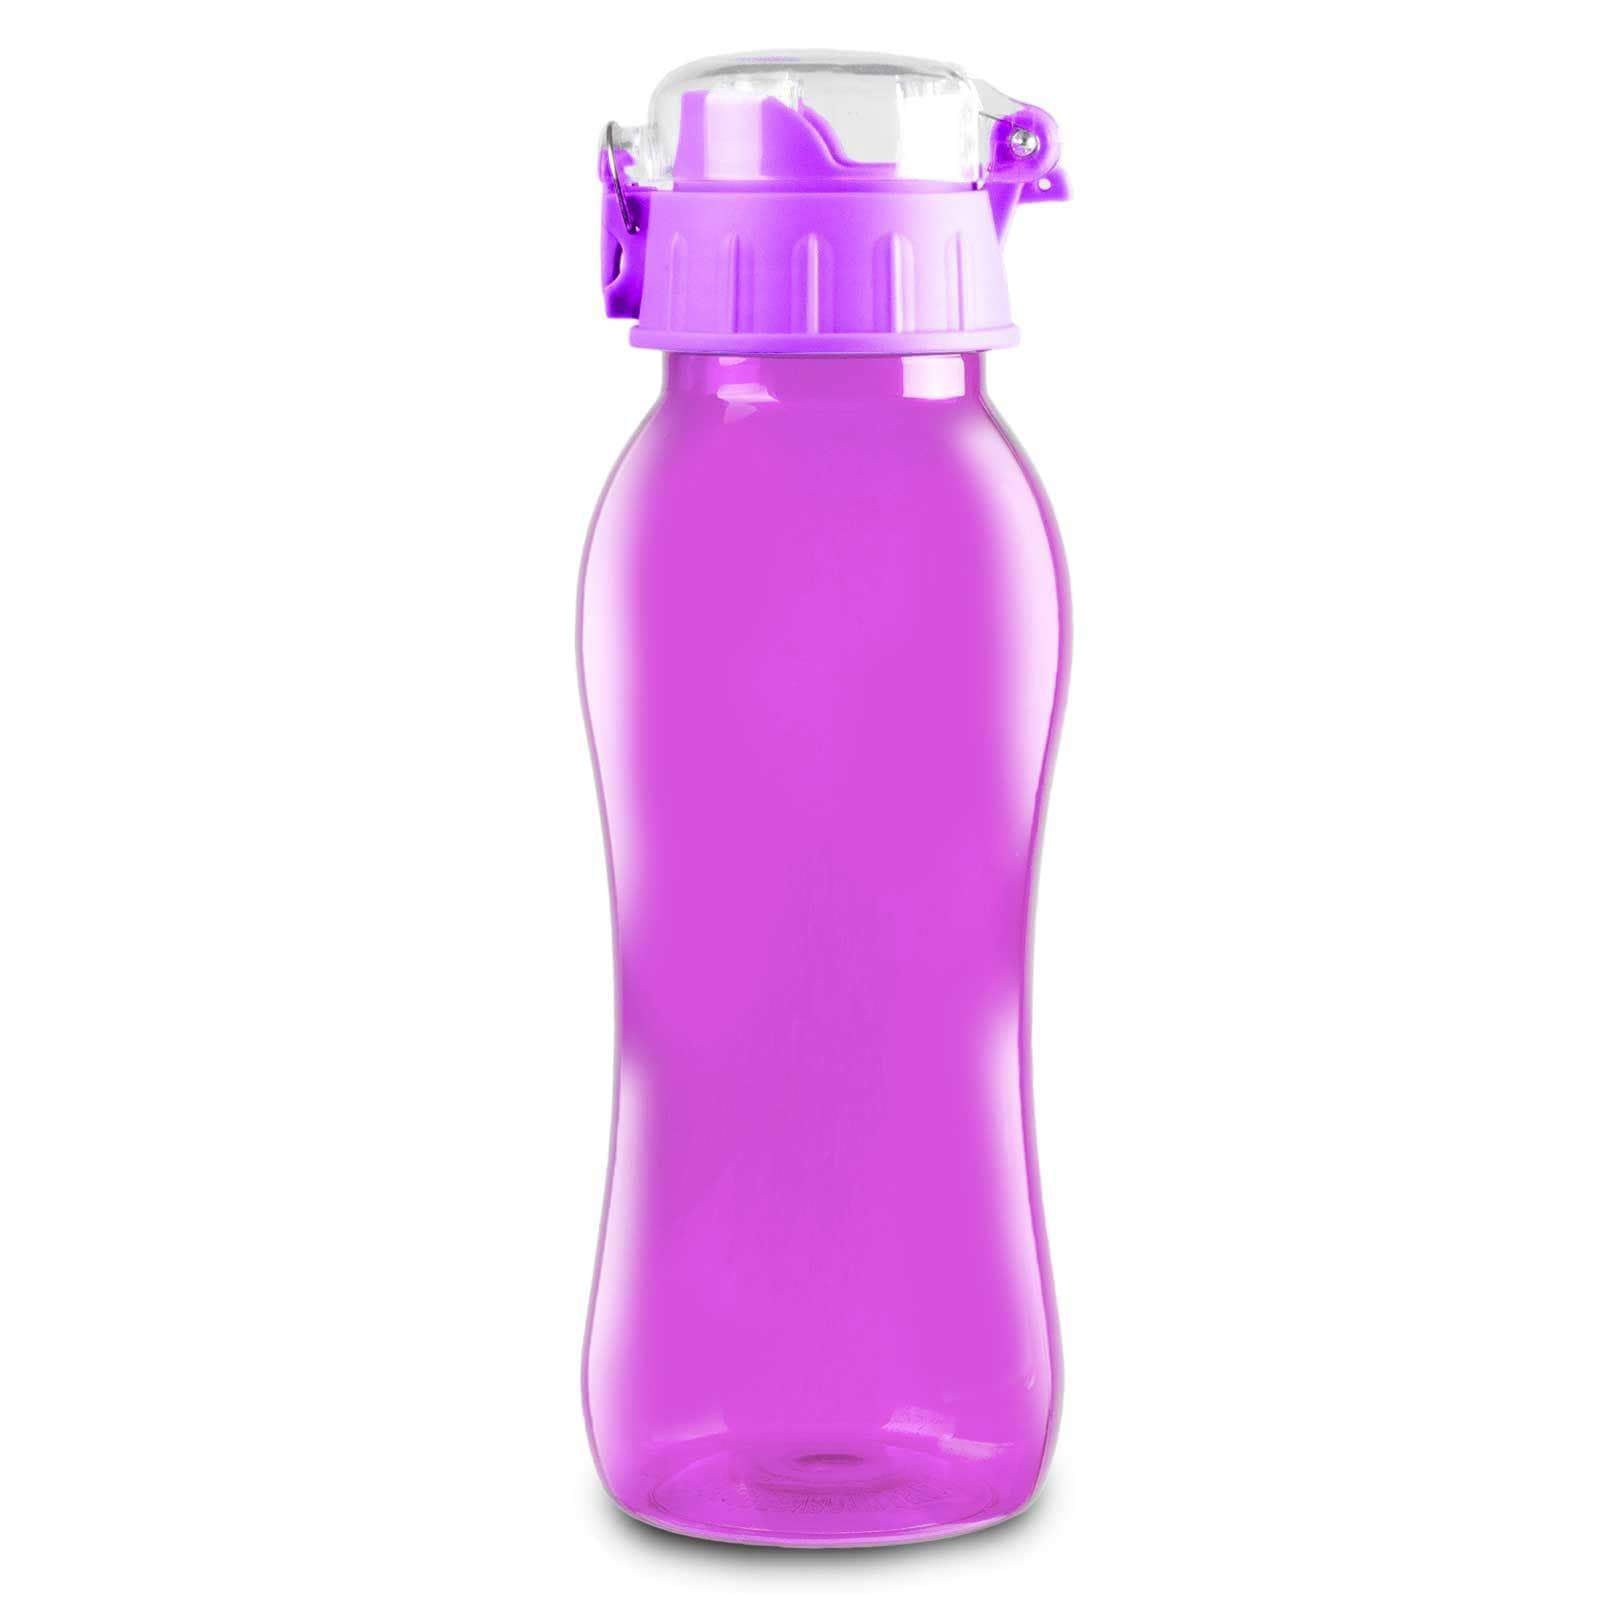 Geo Bottles Bottles Purple 20oz BPA Free Sports Bottle With Wide Mouth Opening